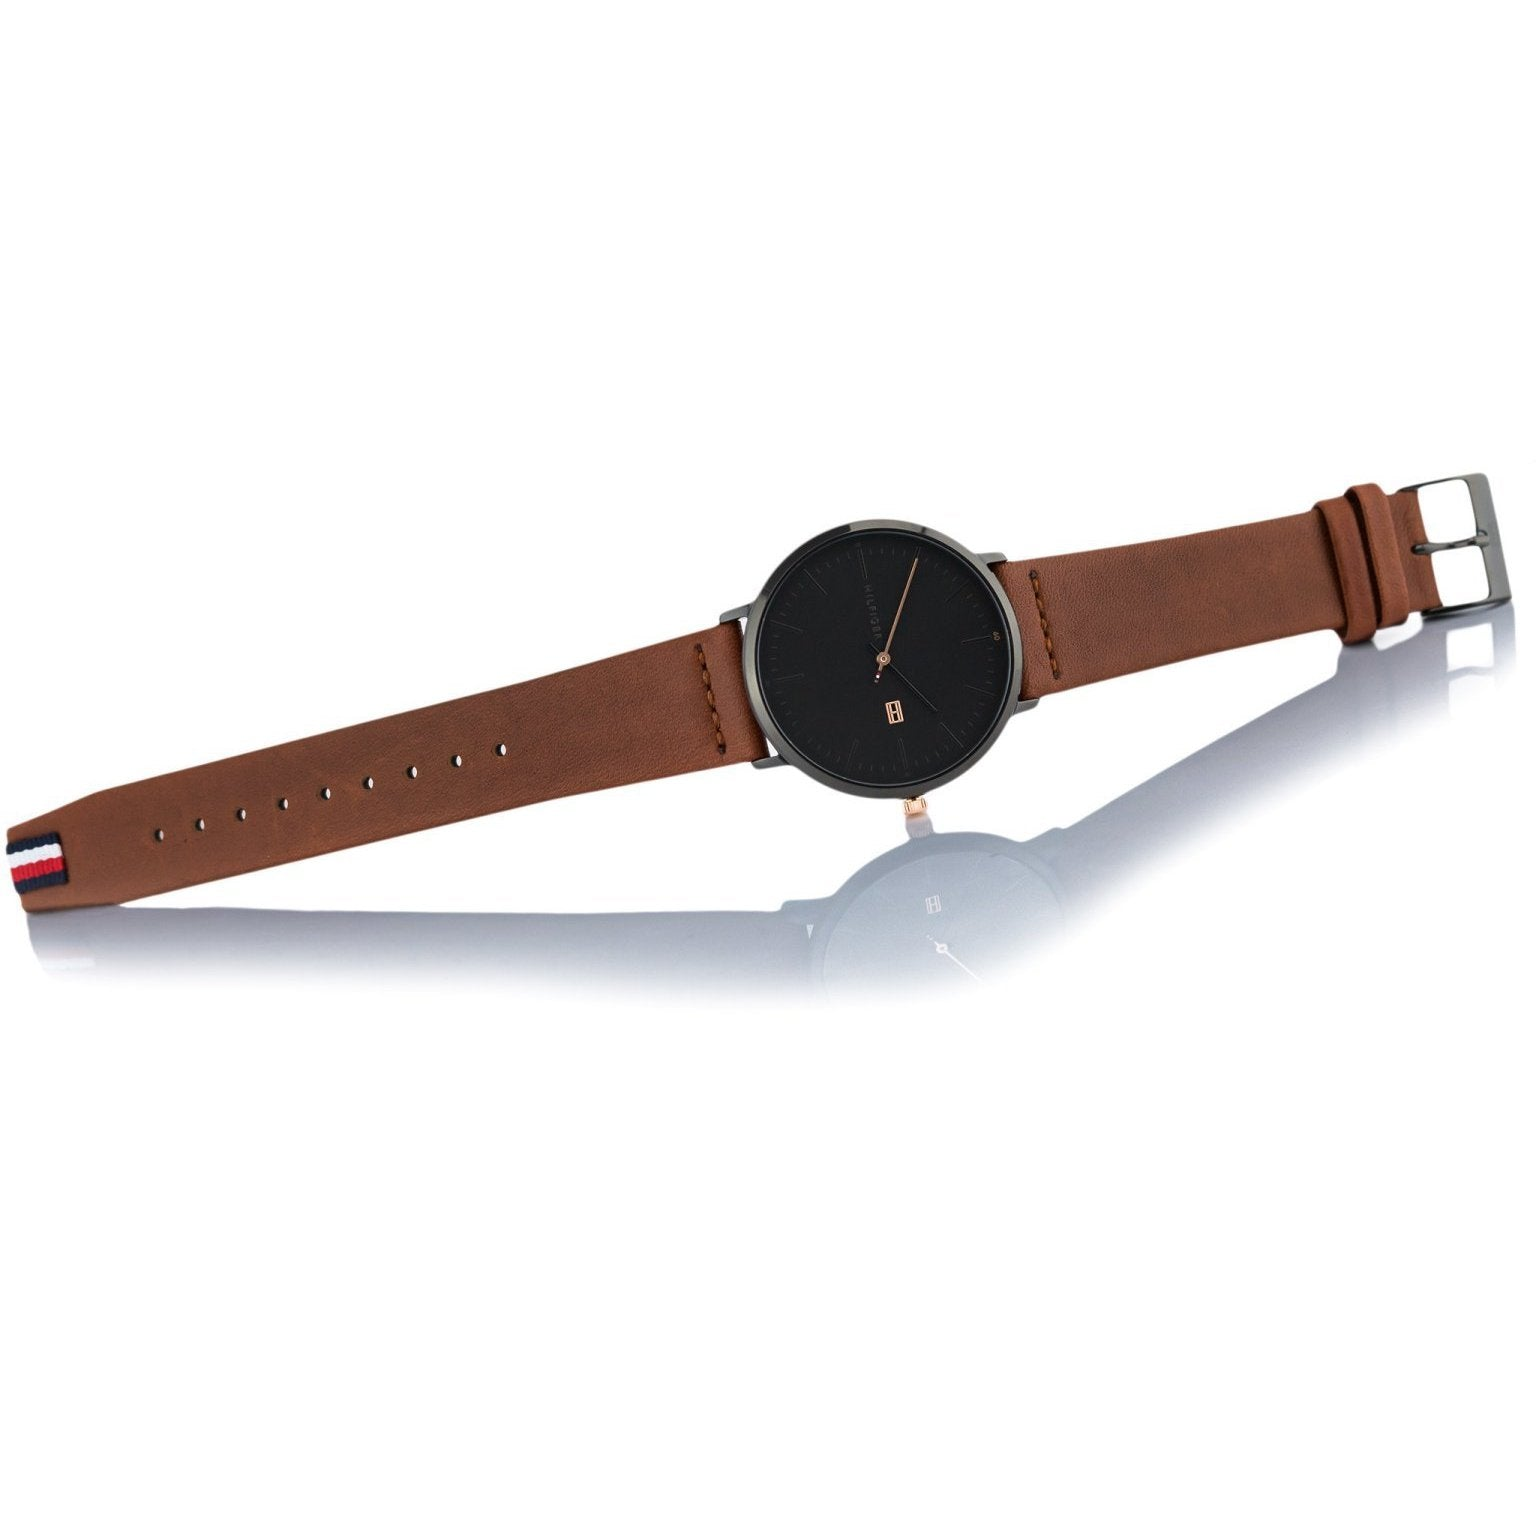 077e9d40 h m s Remaining. Tommy Hilfiger Men's Brown Leather Watch - 1791461